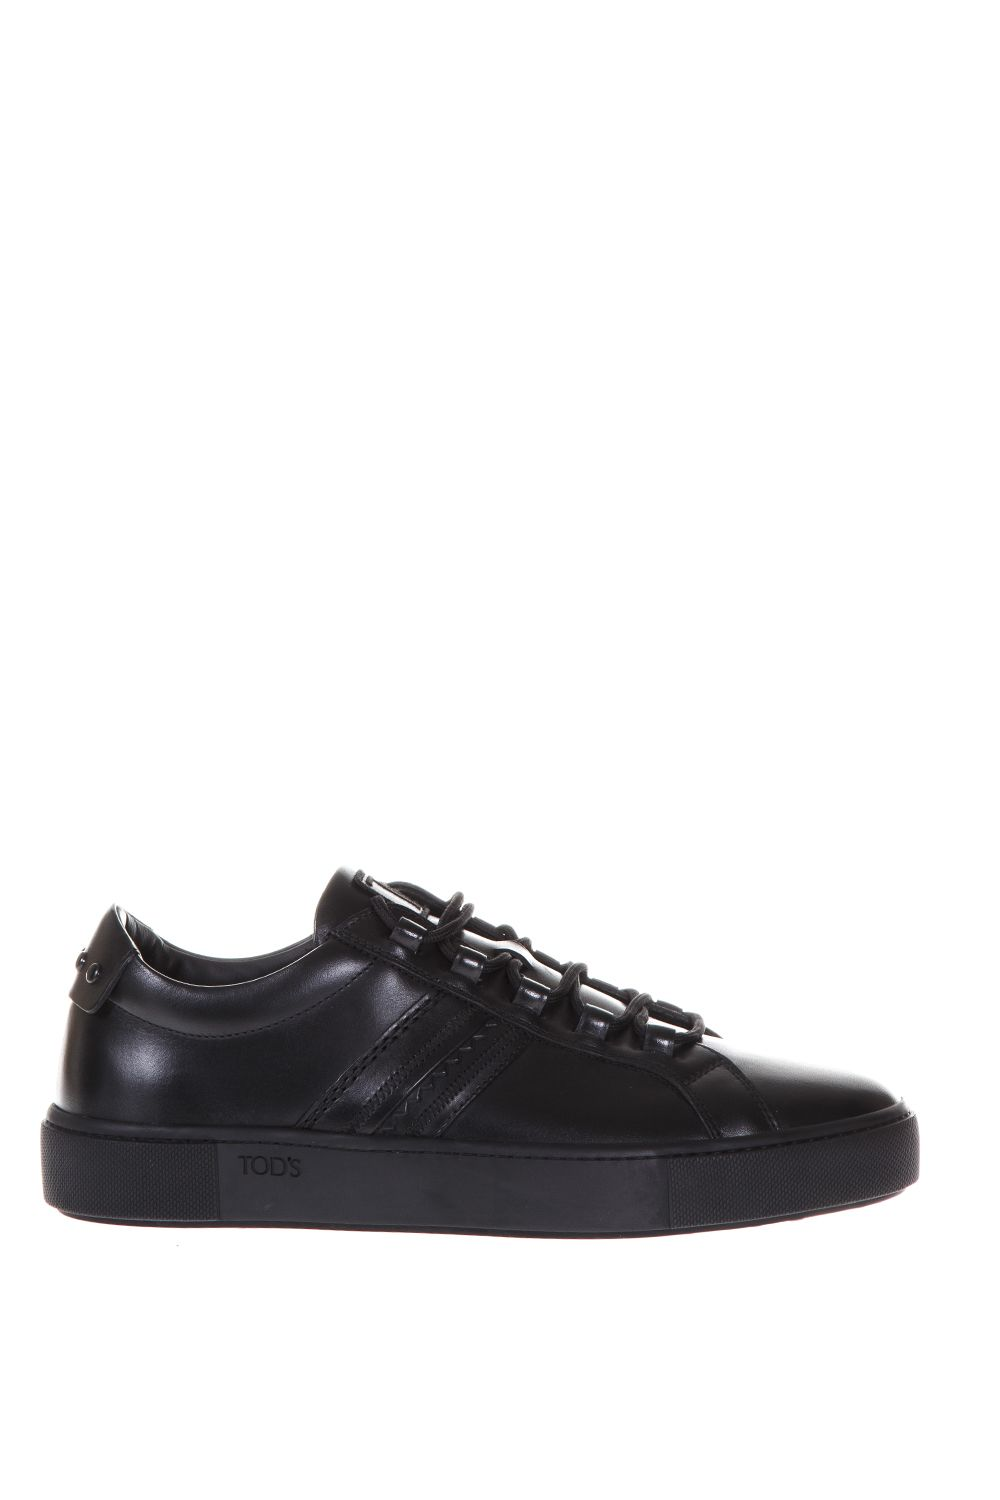 Tods Leather Sneakers With Tods Stitched Monogram